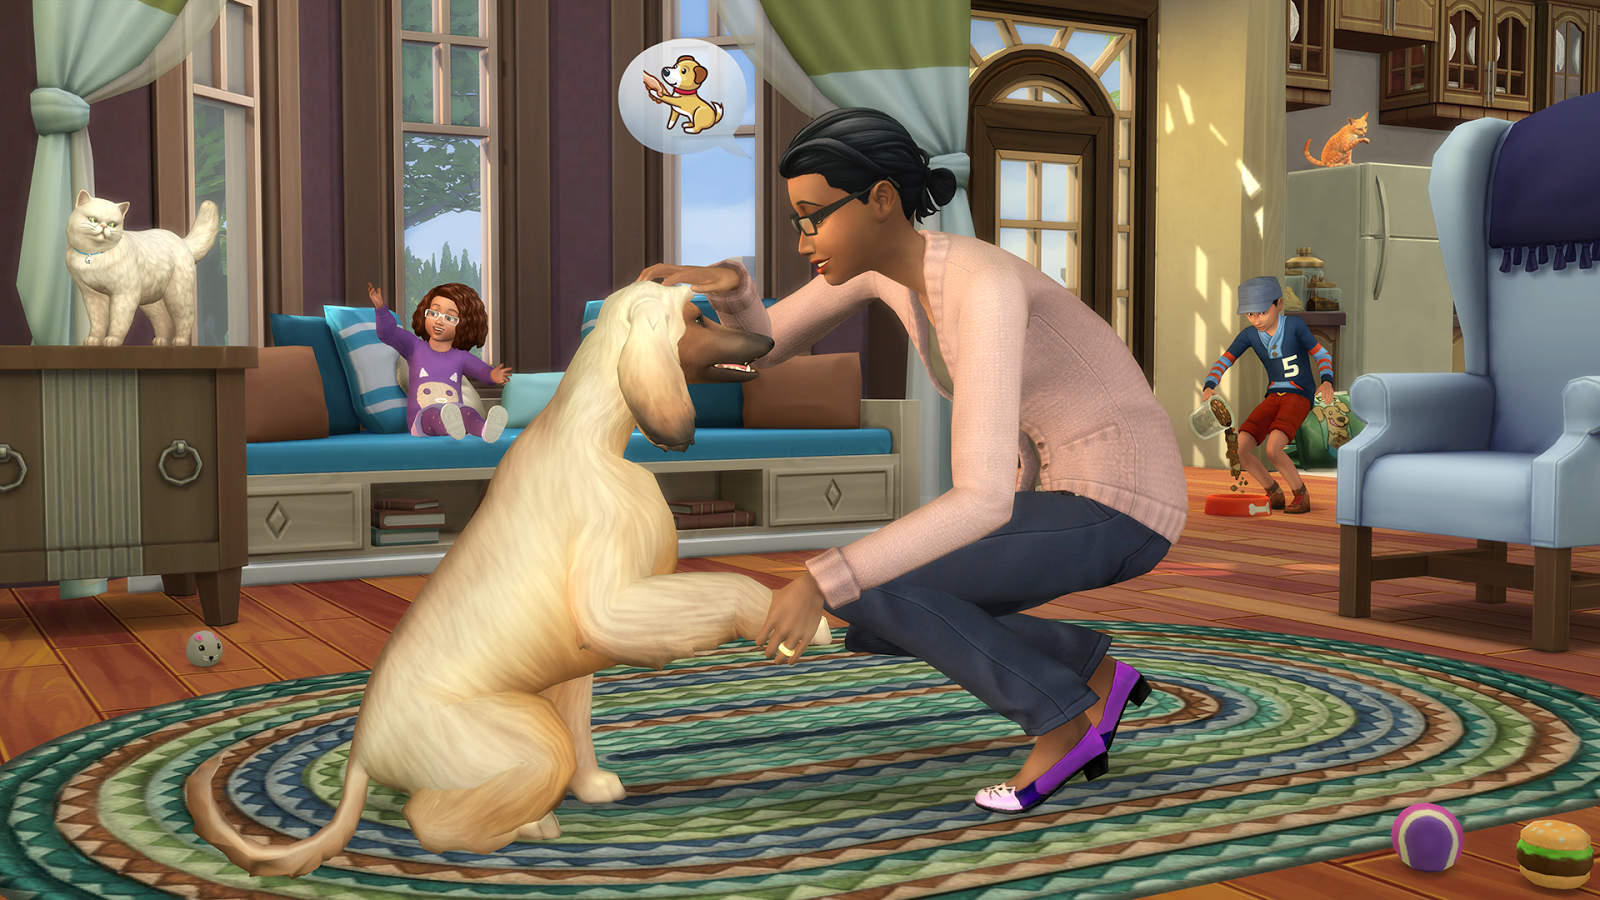 You can finally get your dream pooch in The Sims 4